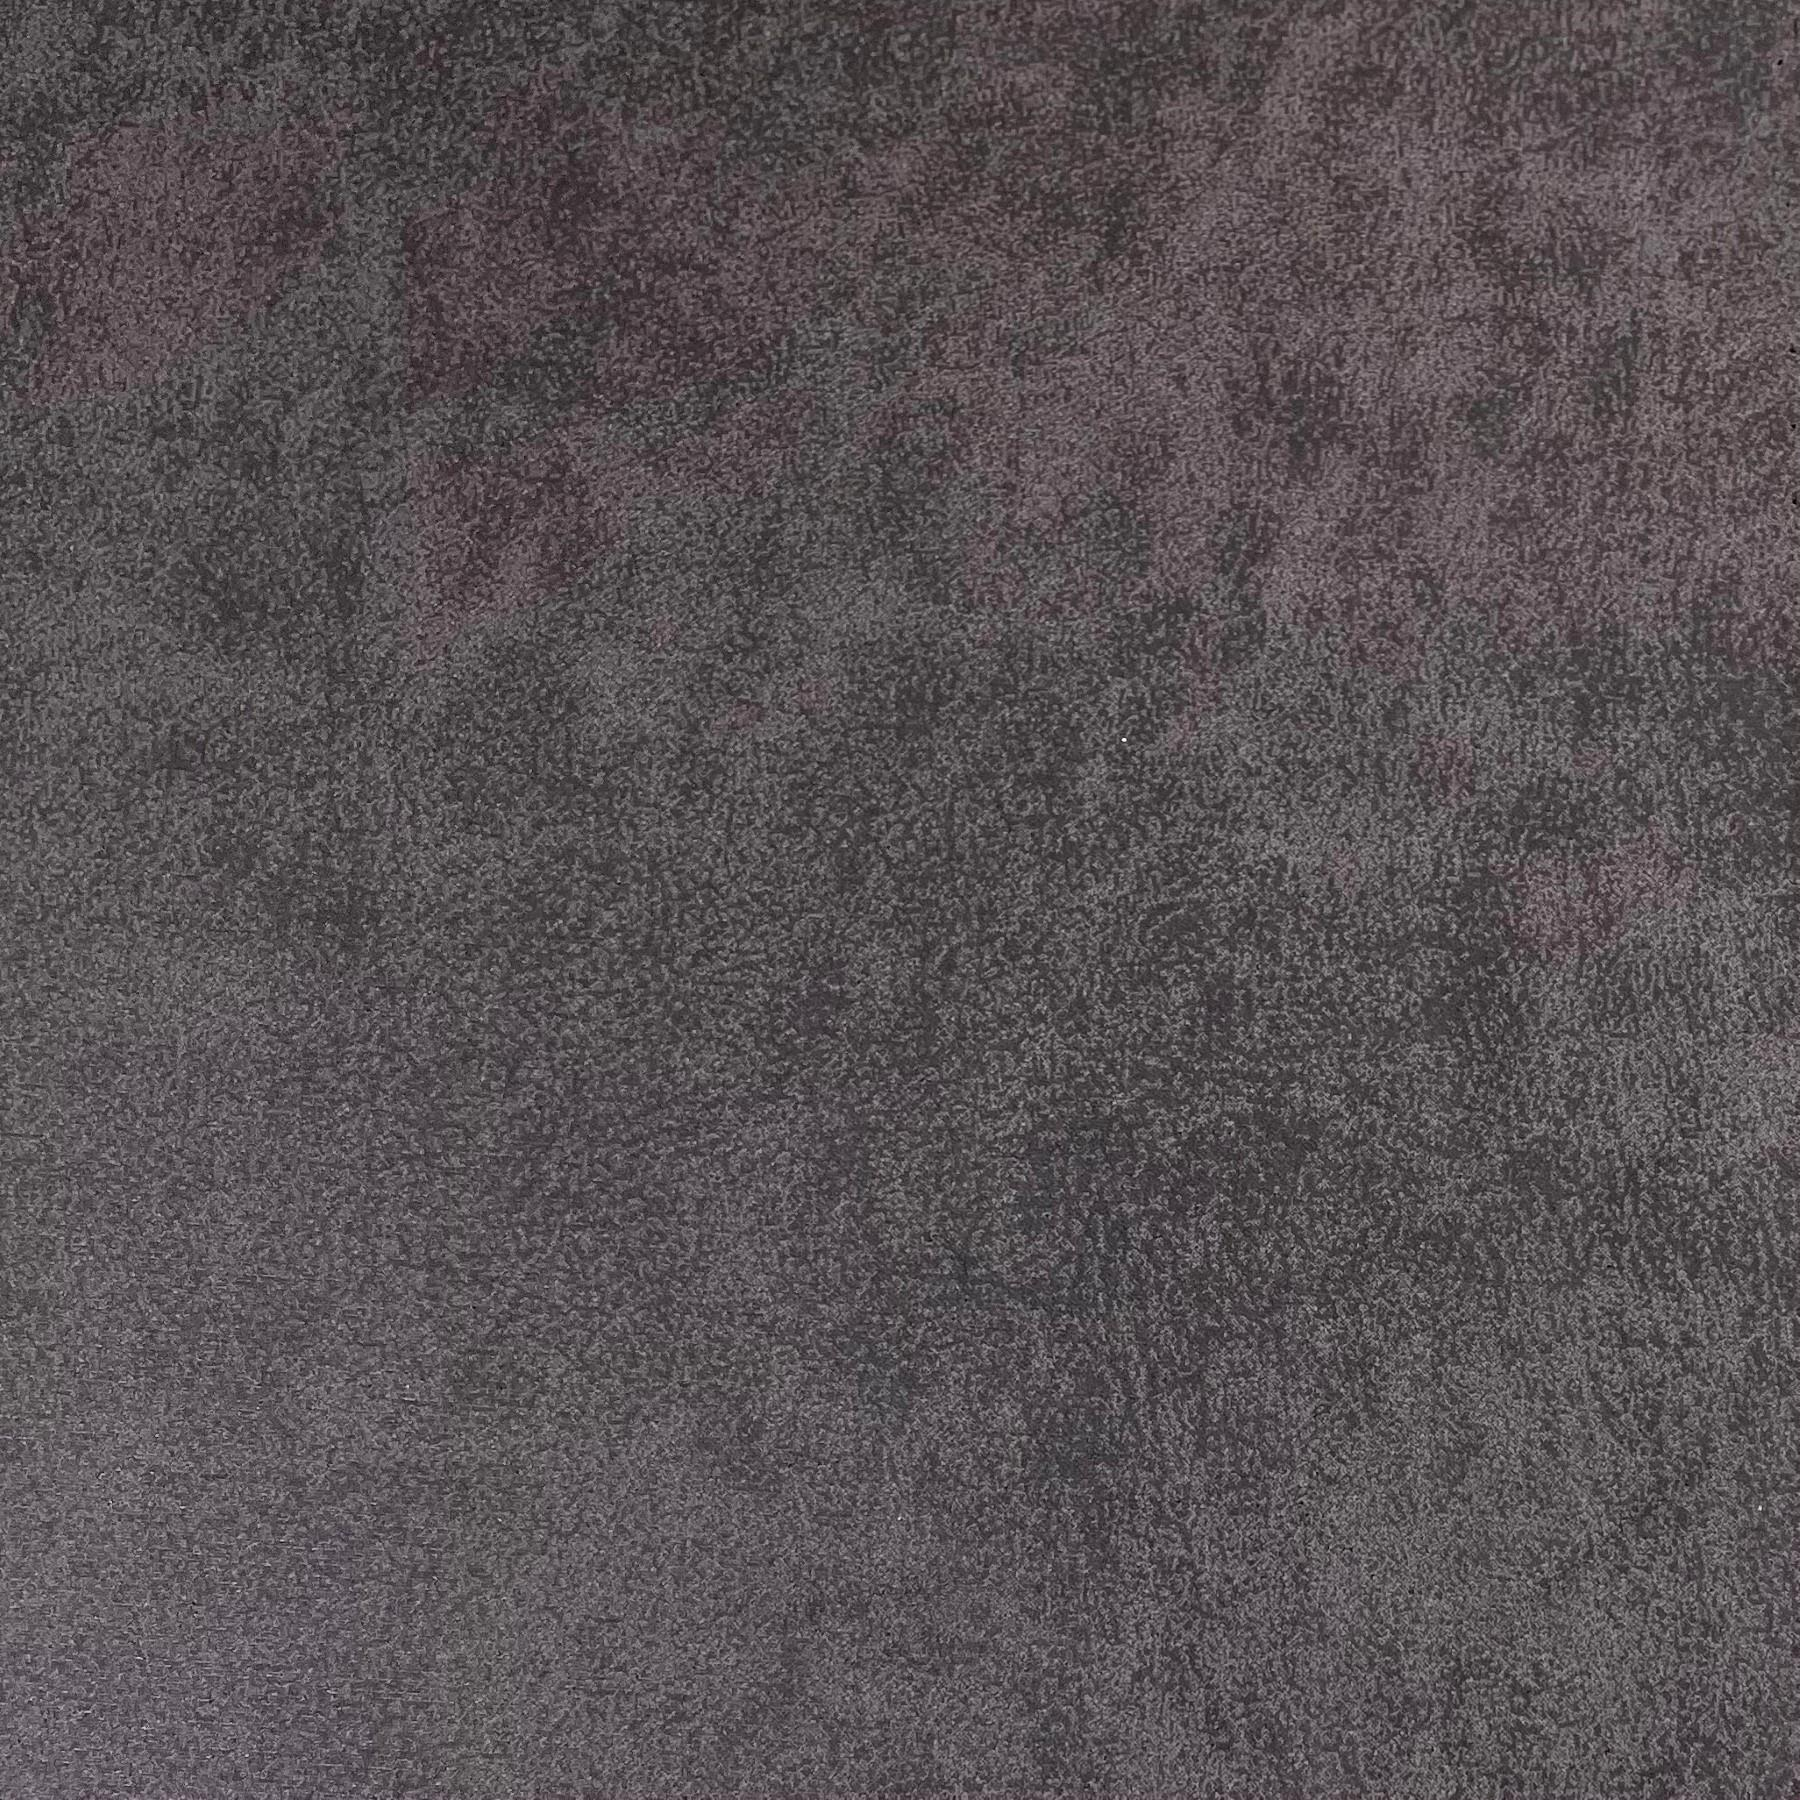 thumbnail 38 - AGED BROWN DISTRESSED ANTIQUED SUEDE FAUX LEATHER LEATHERETTE UPHOLSTERY FABRIC